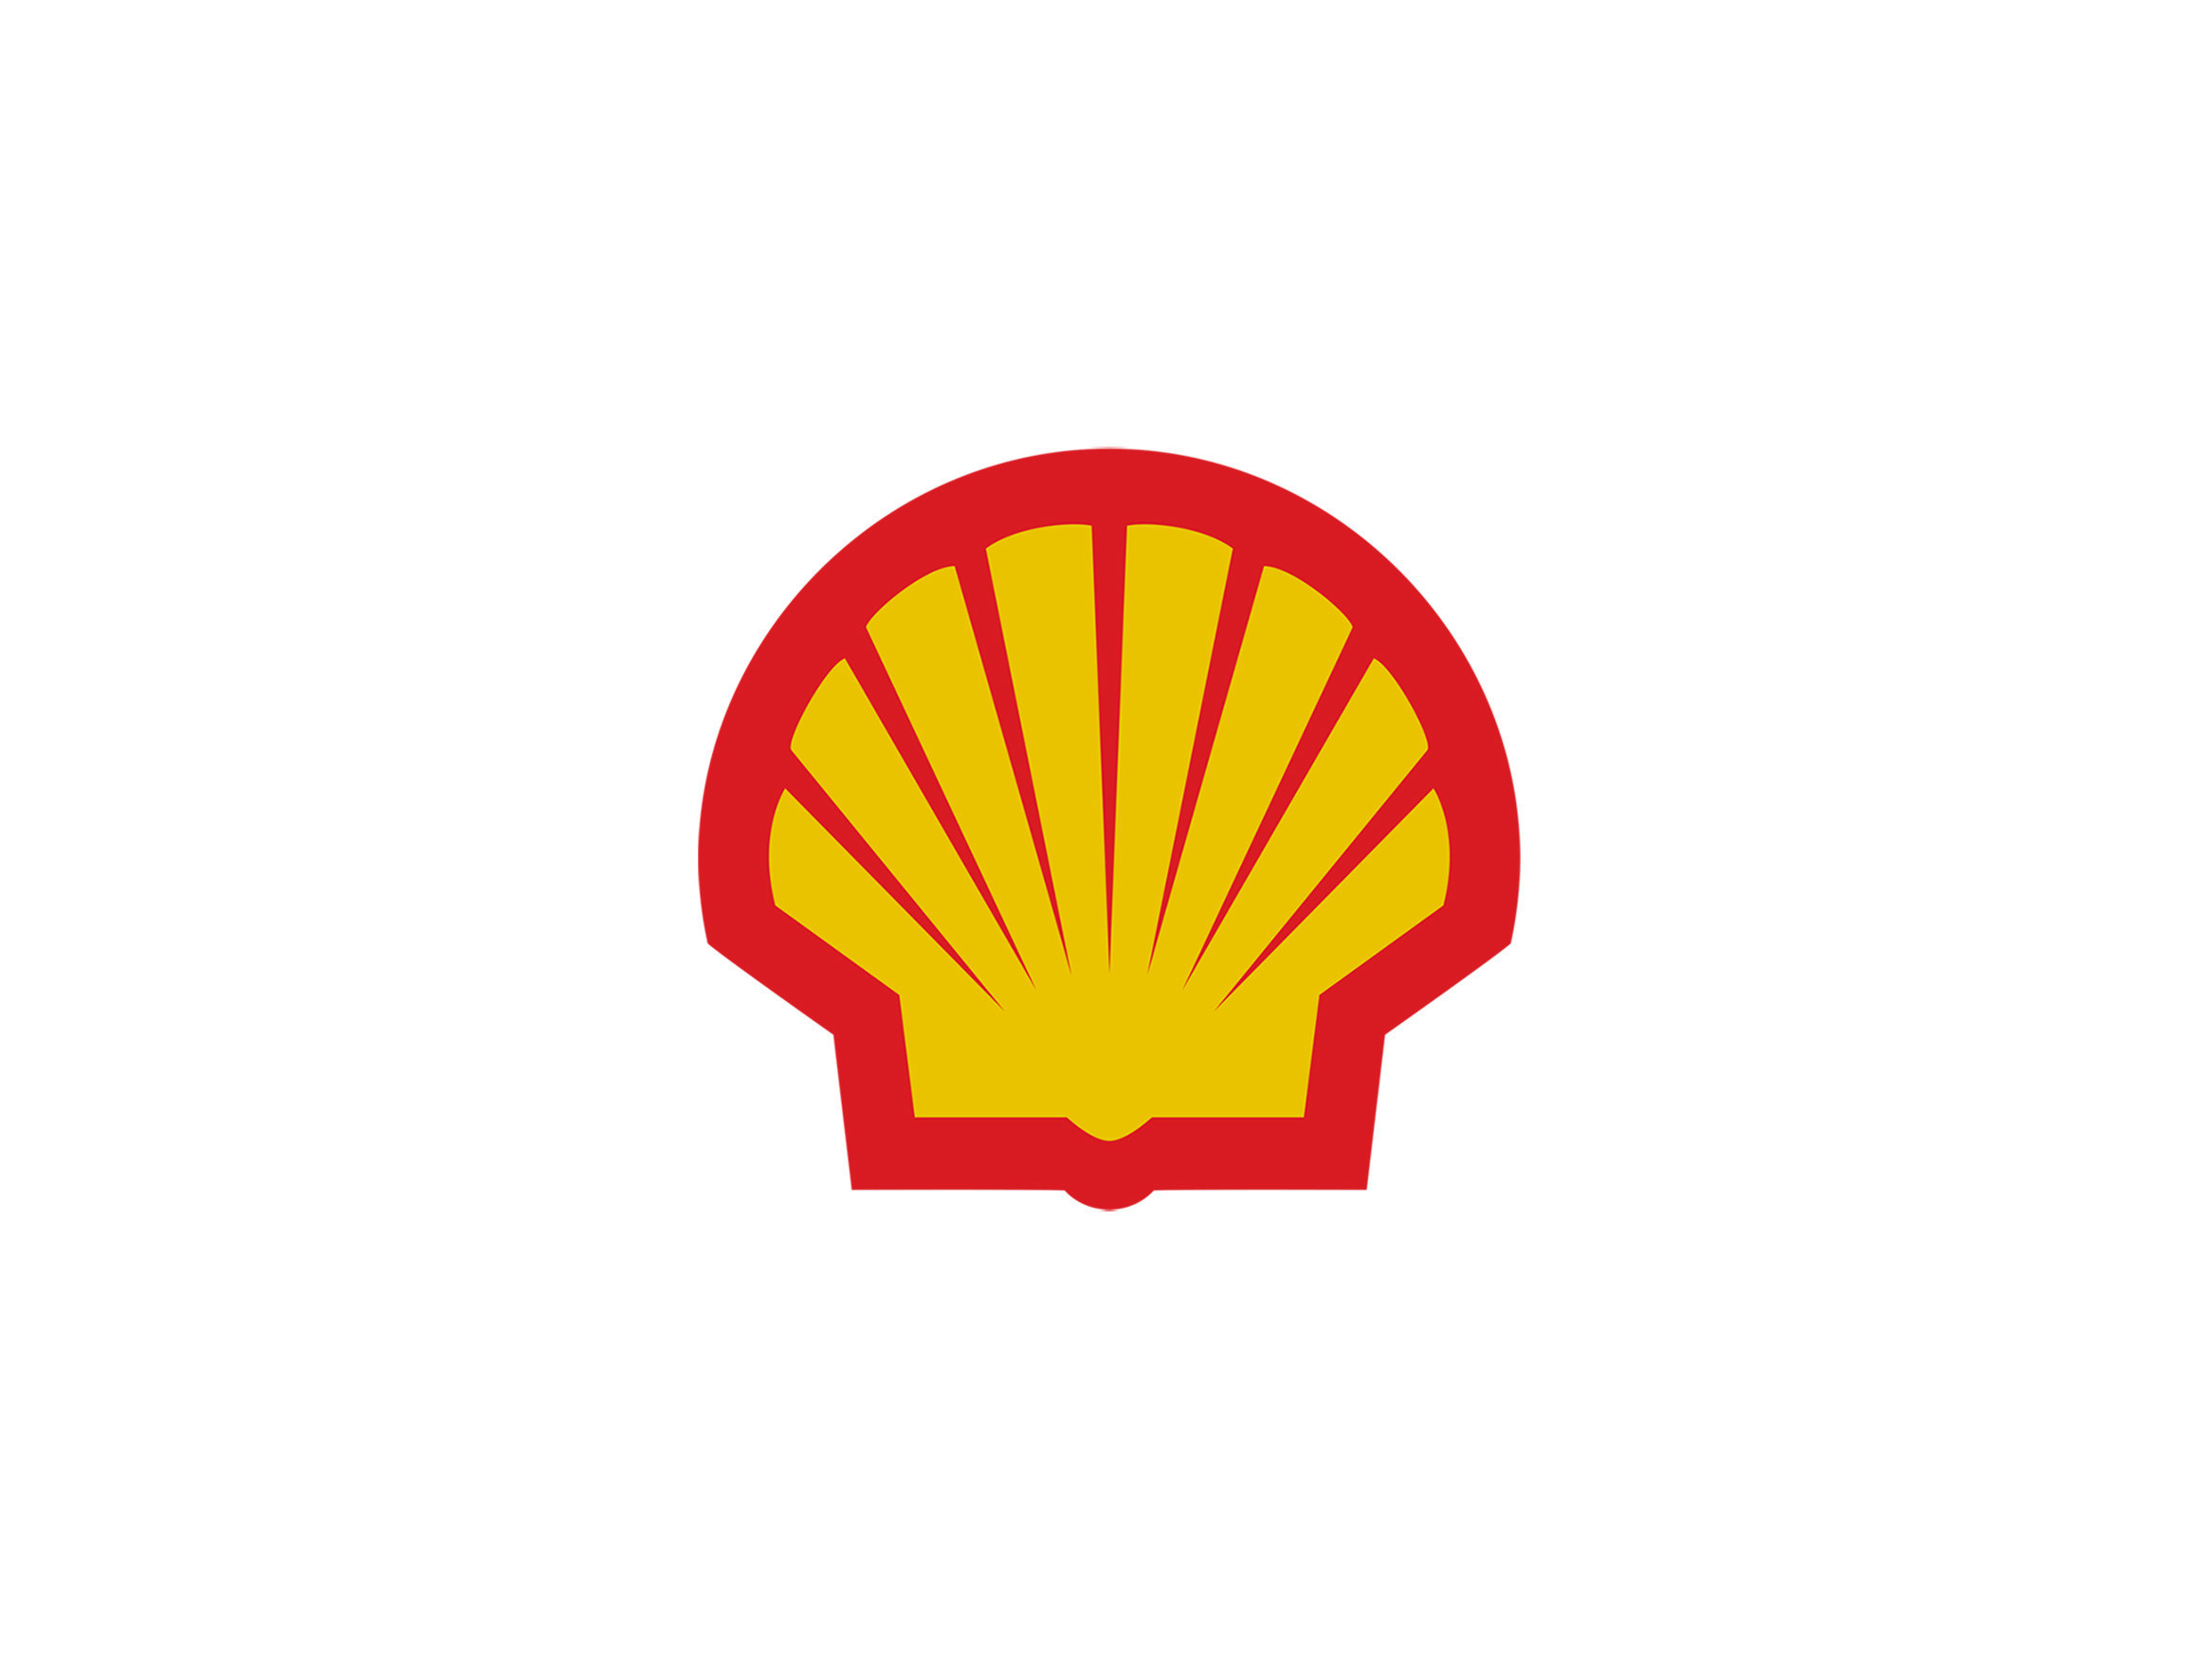 cf7a707d72bdd Shell Canada Limited Shell completes divestment of oil sands int.jpg p publish